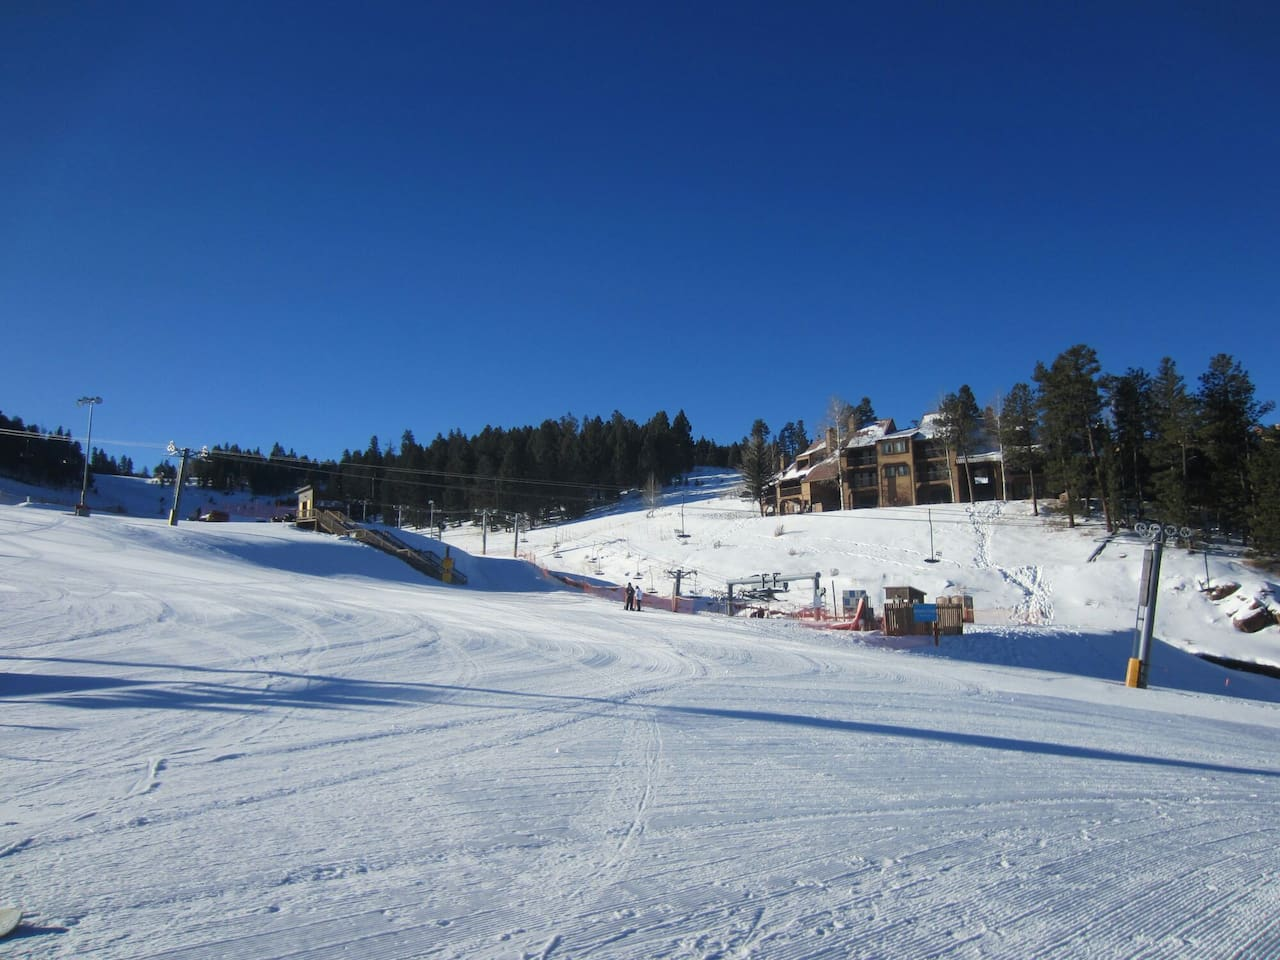 View of ski run condo from the express chairlift.